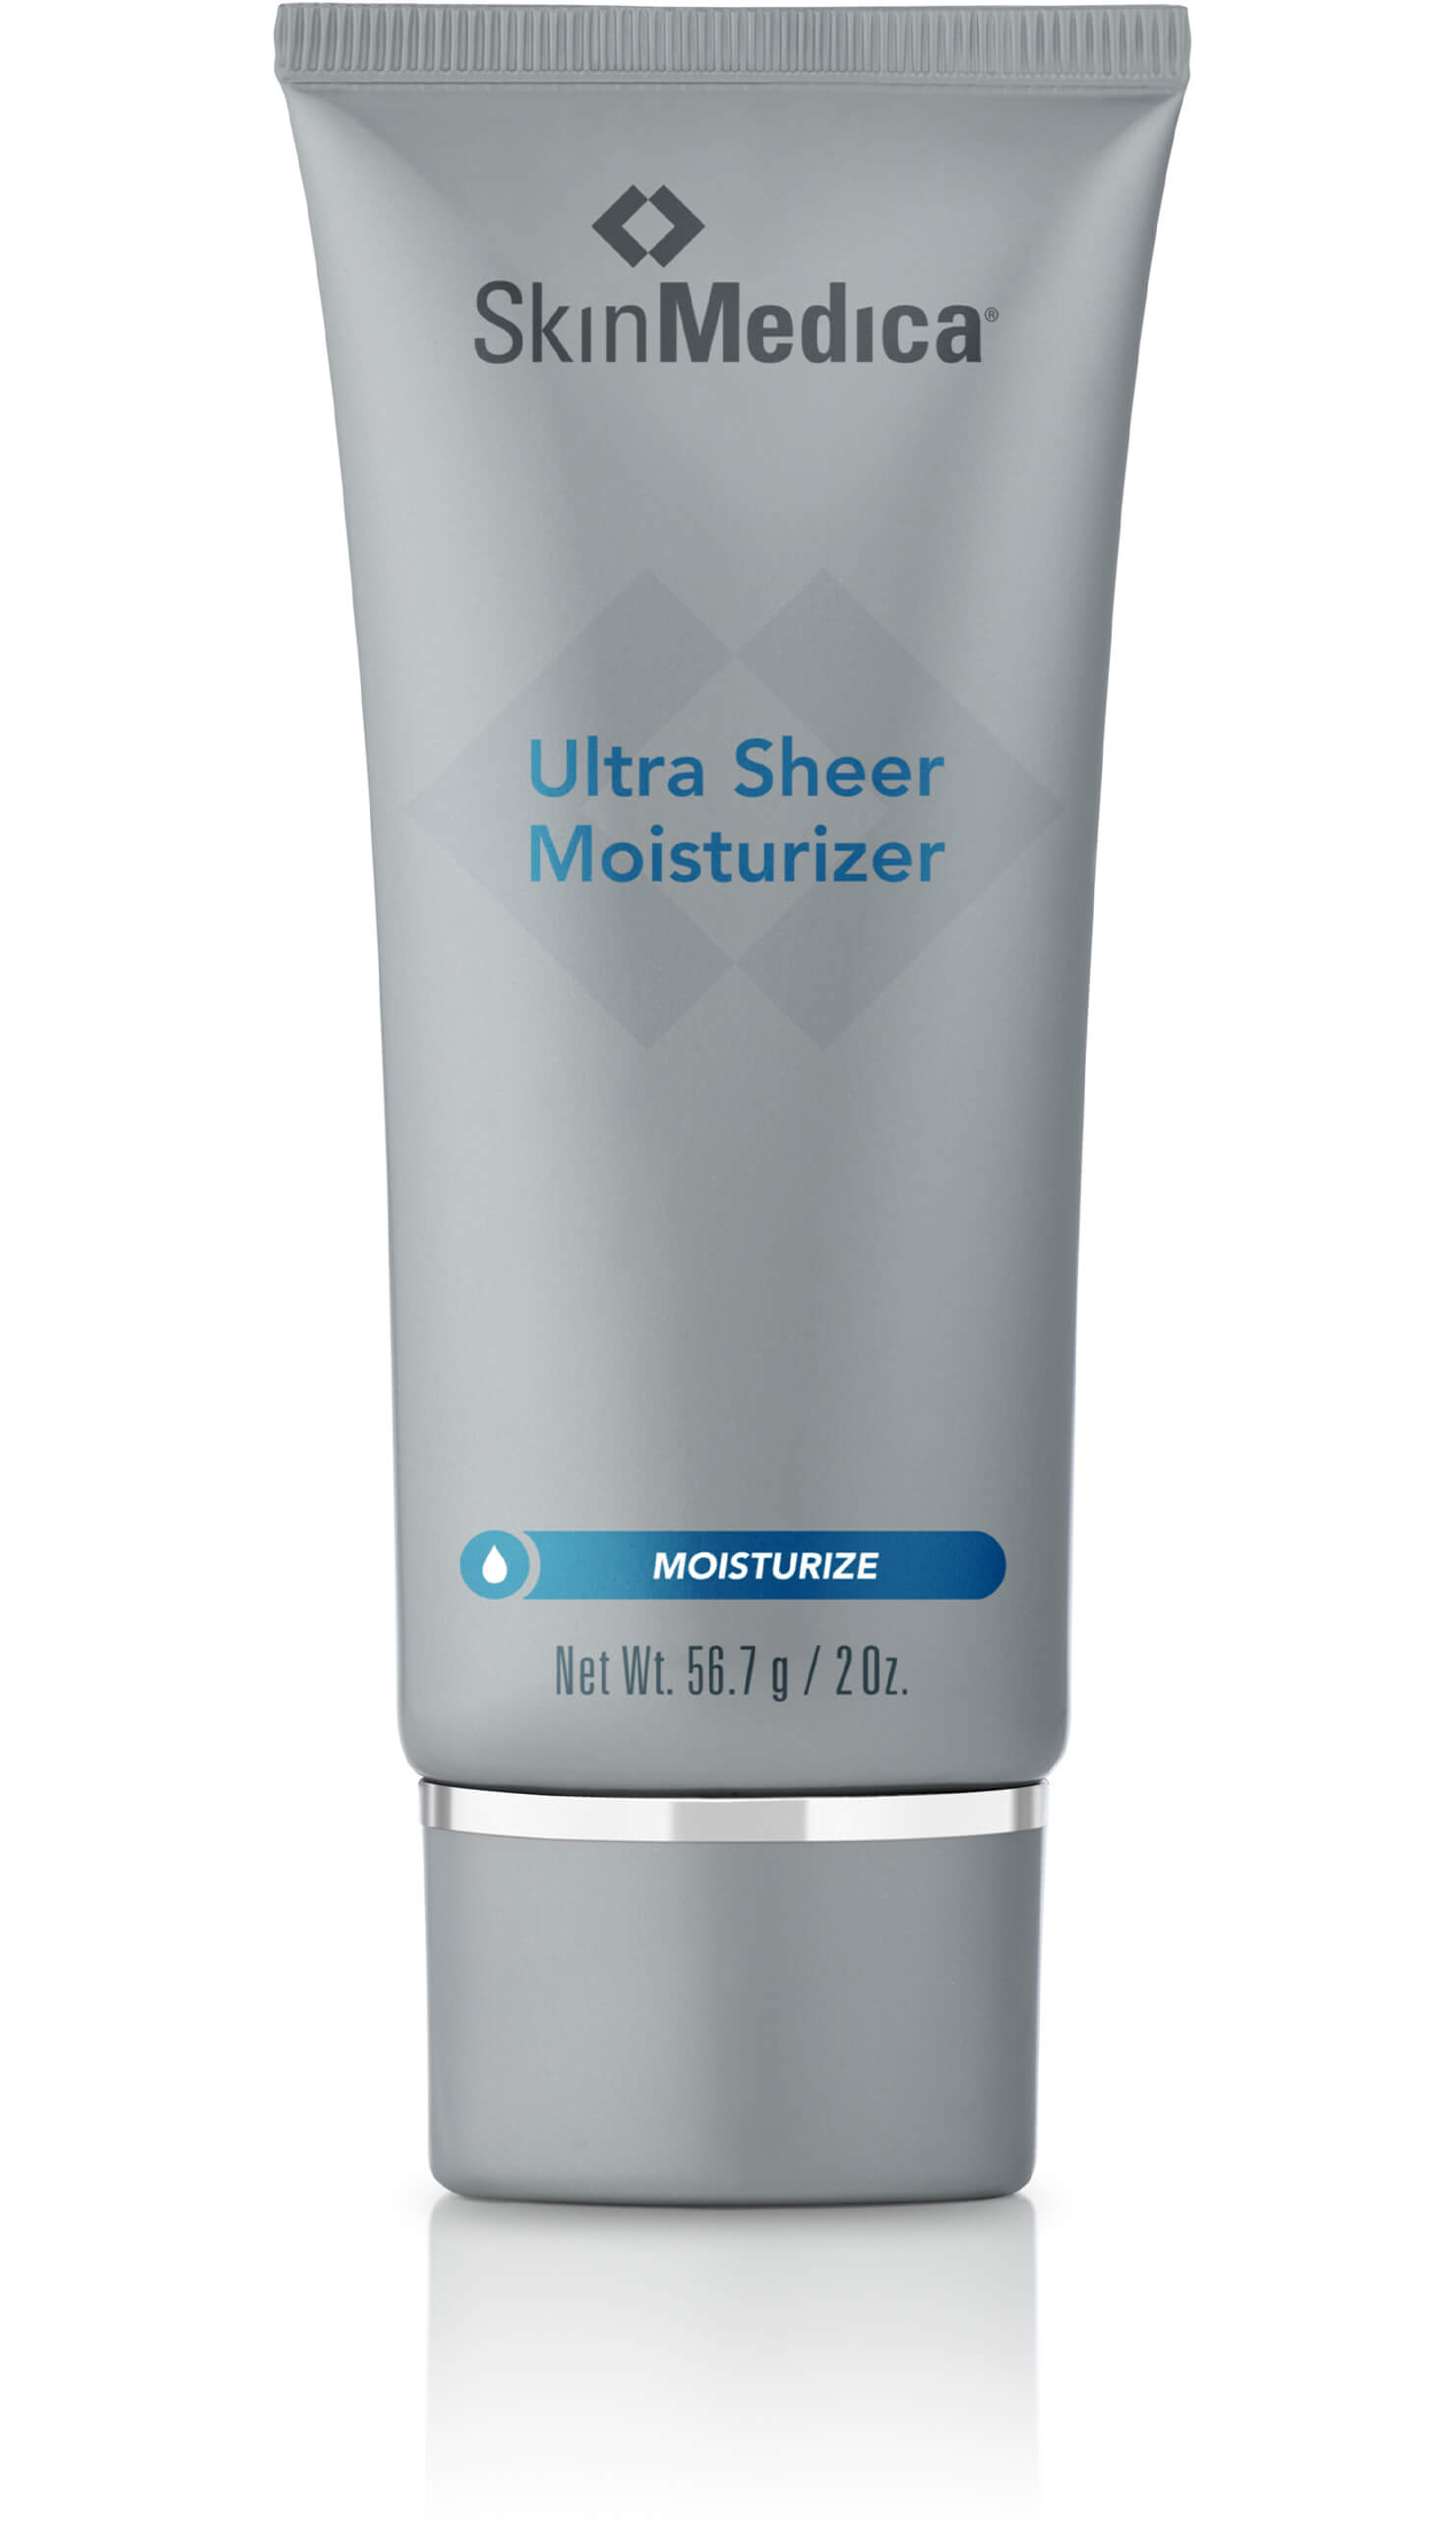 SkinMedica Ultra Sheet Moisturizer product sold in Surrey BC